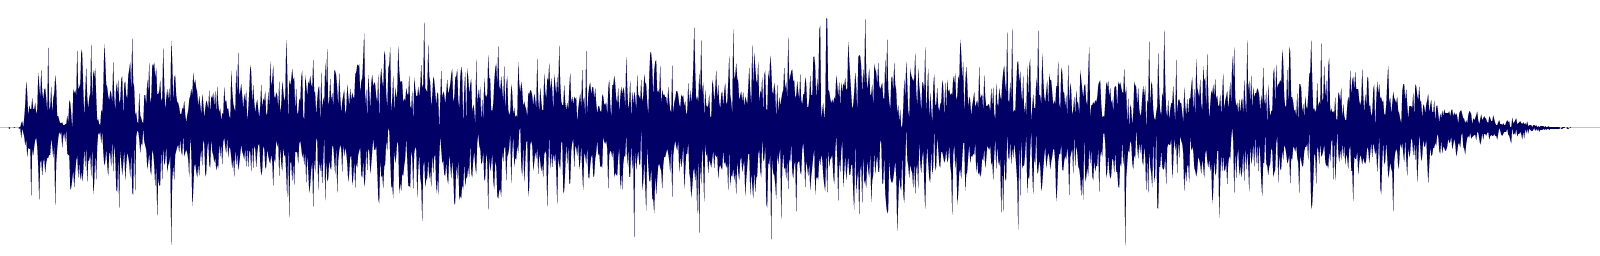 waveform of track #150716